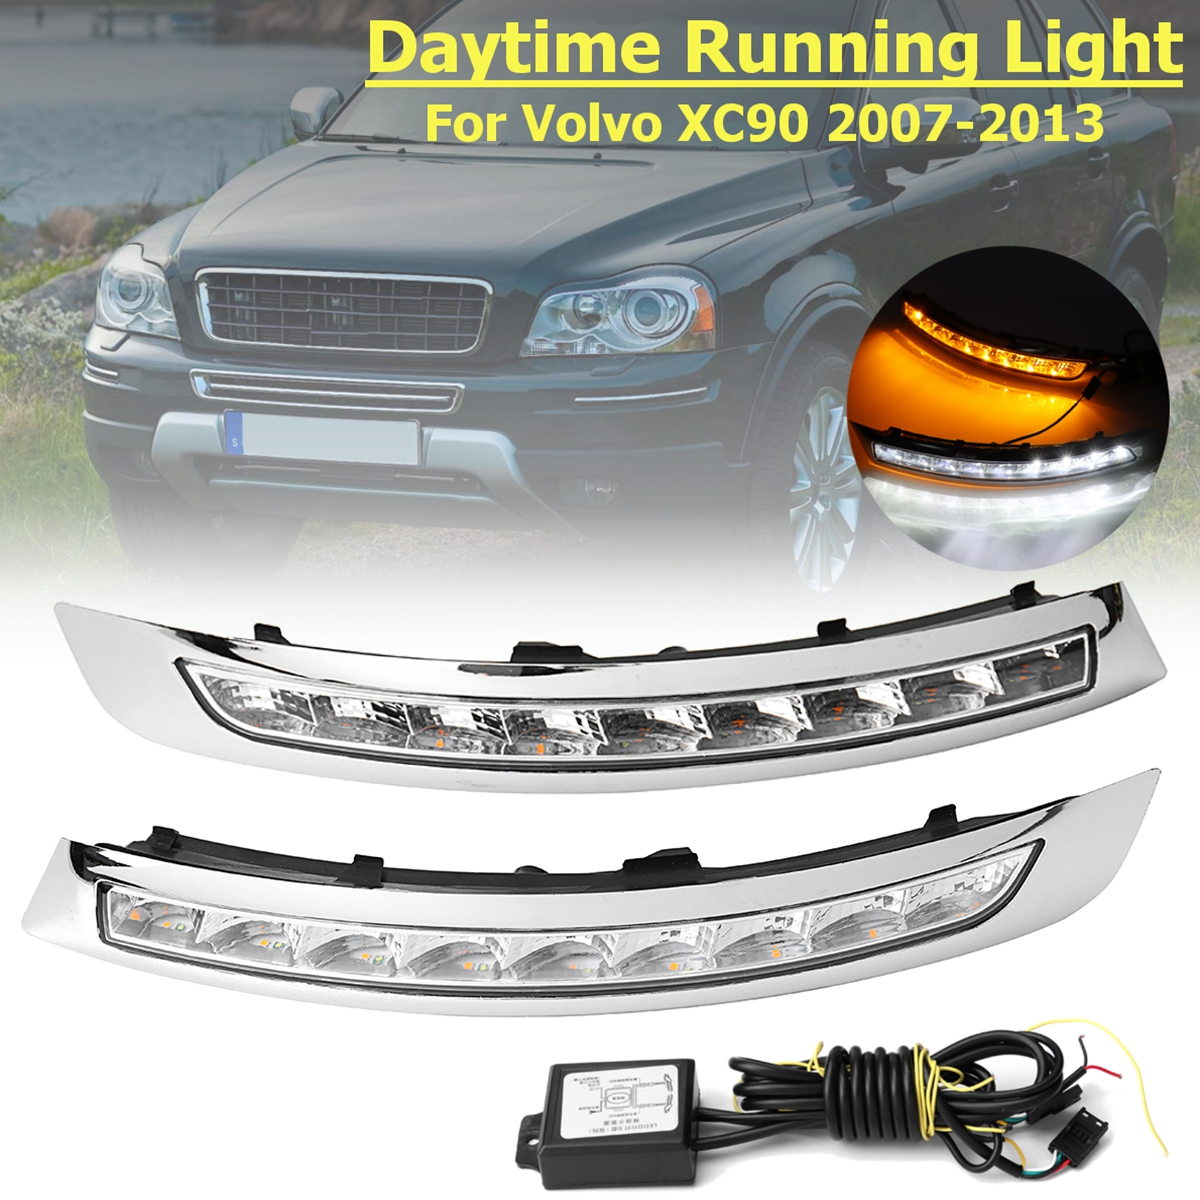 1 Pair LED DRL Daytime Running Lights Lamp Turning Signal fog lamp 12V 6000k Fog Lamp Frame Fog Light For Volvo XC90 2007~2013 free shipping led daytime running lights drl with fog lamp cover led fog lamp case for volvo v60 2011 2013 1 1 replacement